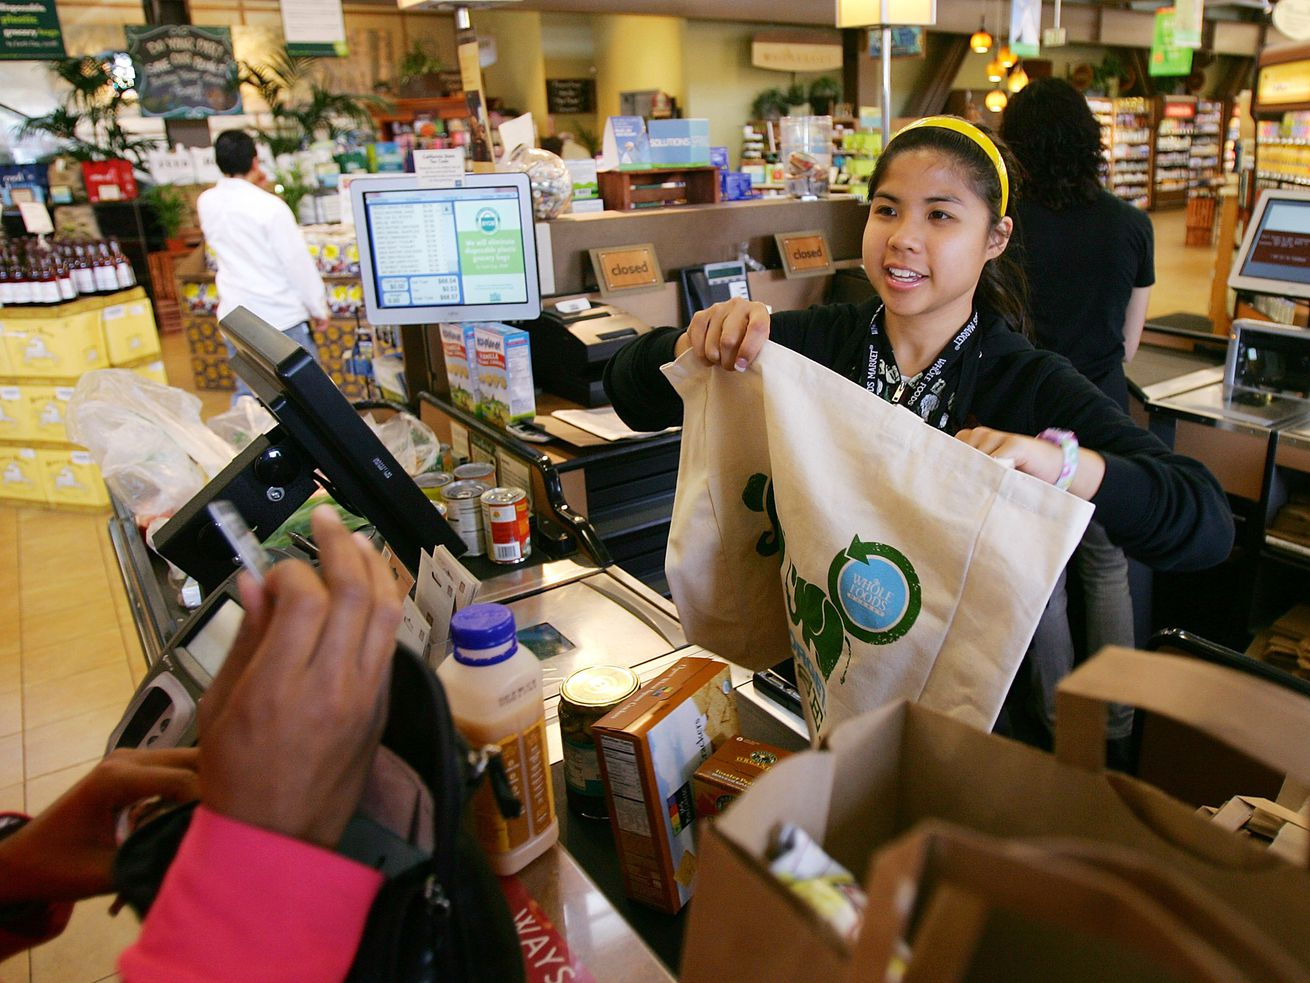 A Whole Foods cashier in Pasadena, California.